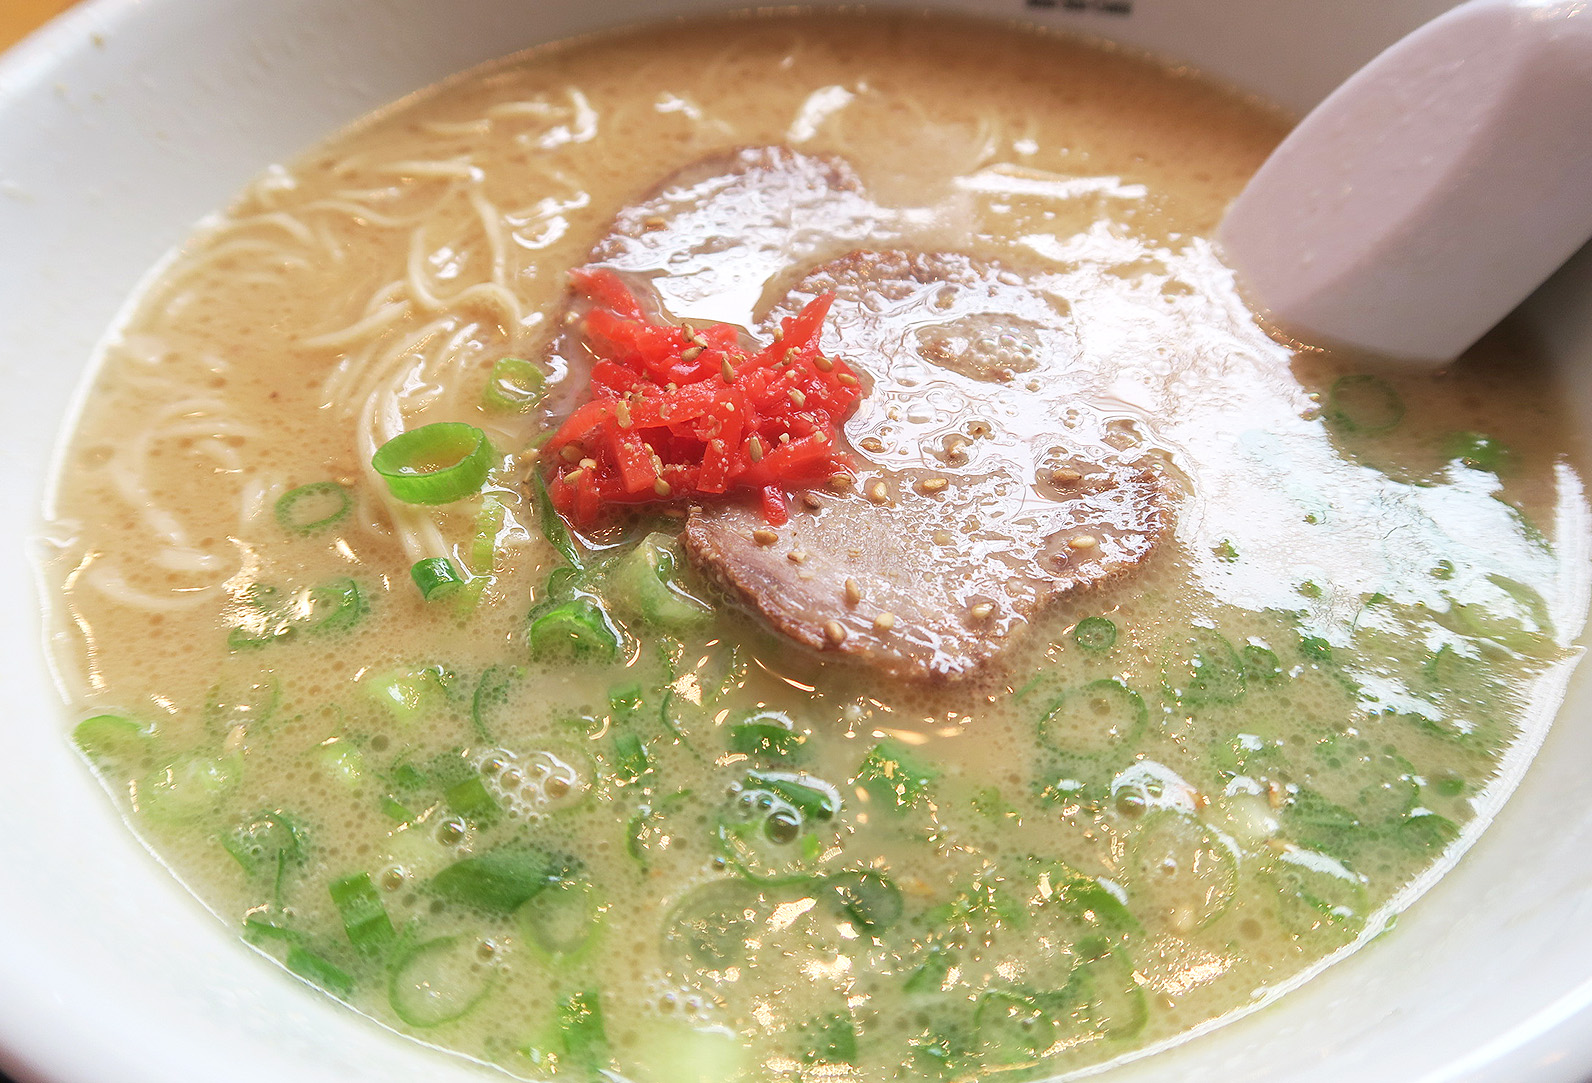 A trip to Shin-sen-gumi Hakata Ramen in Little Tokyo for the best authentic Japanese Ramen that LA has to offer.